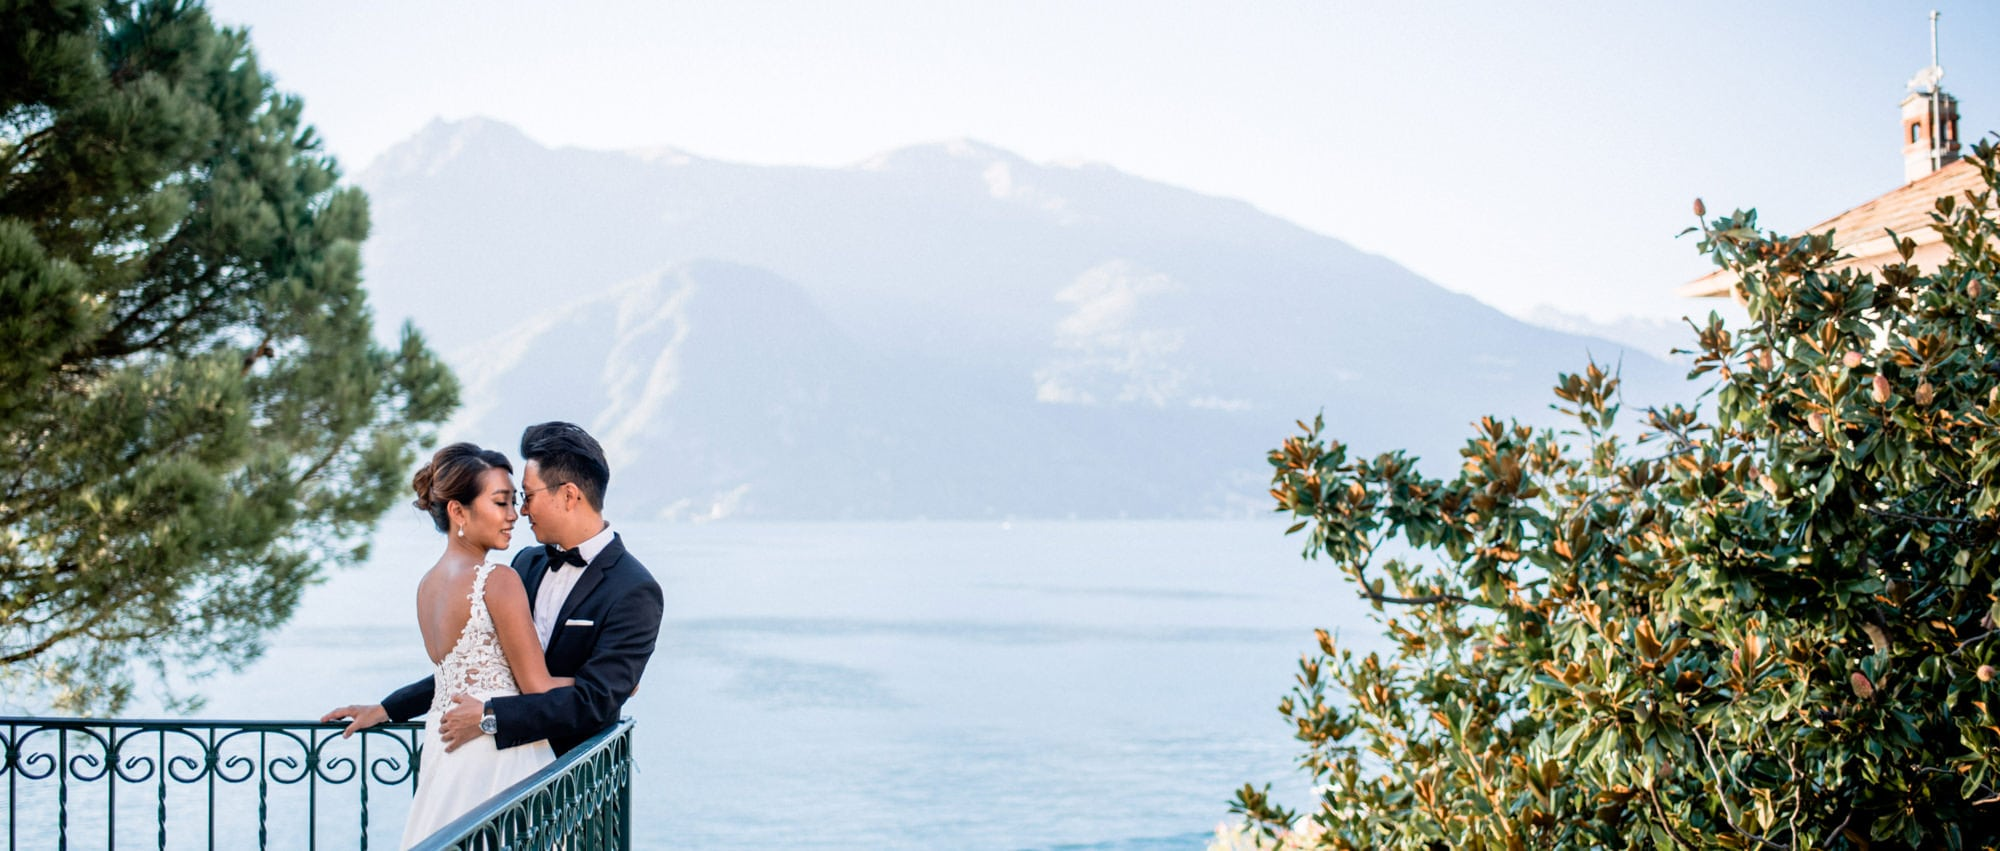 Wedding Photos Lake Como